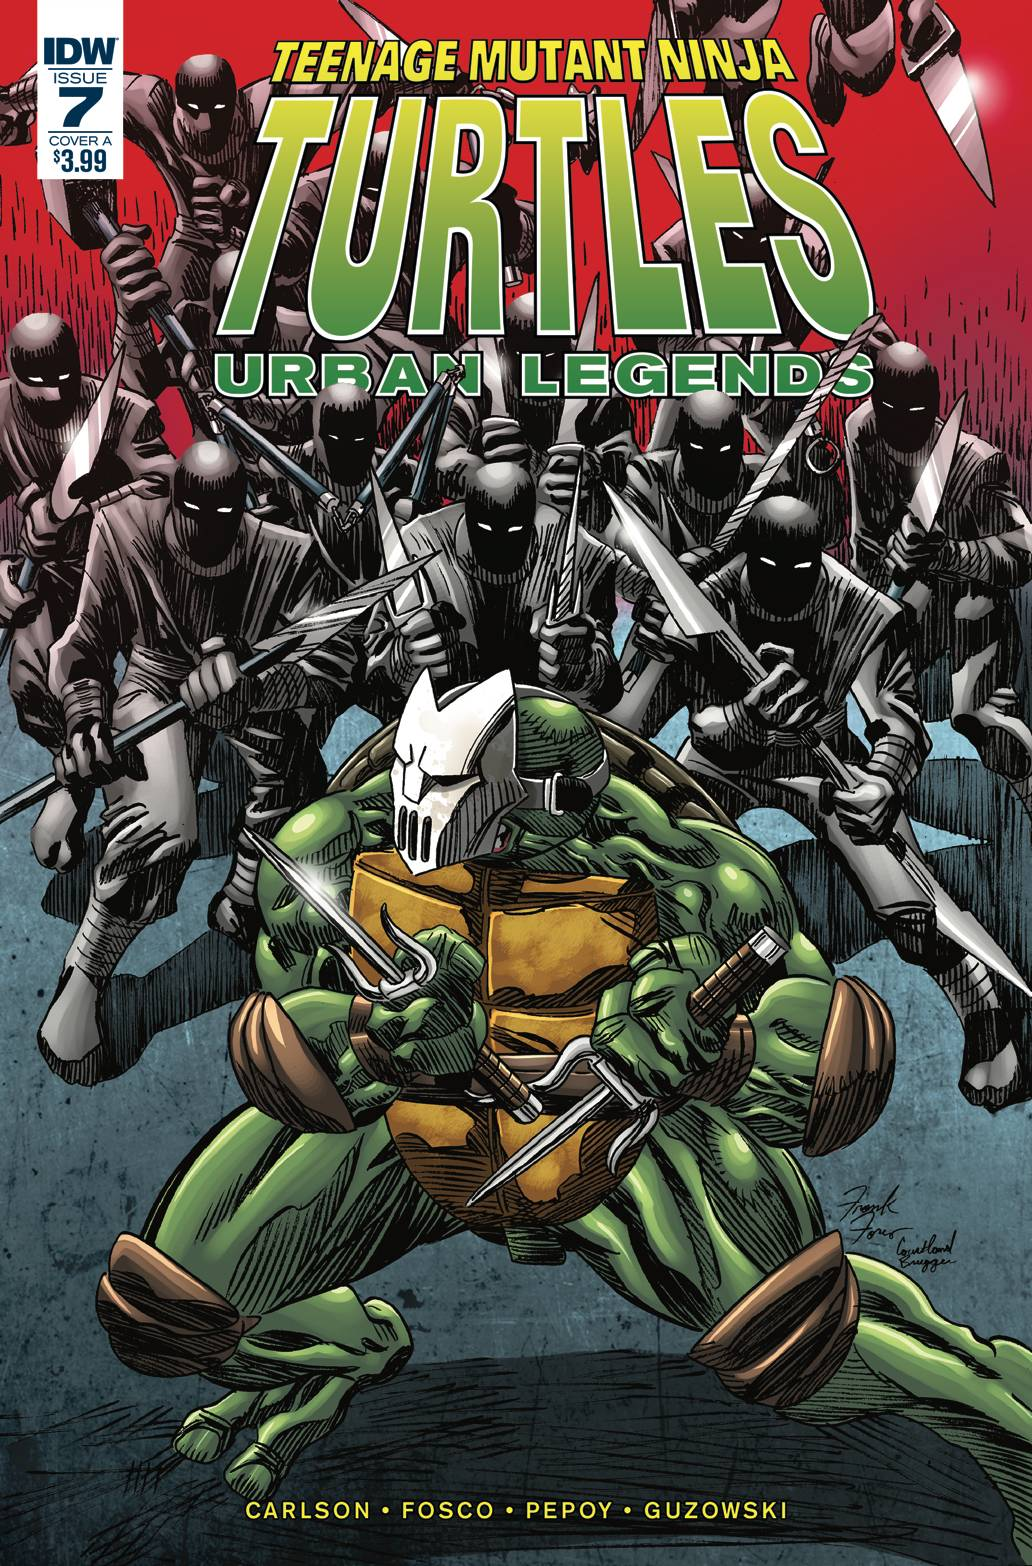 Teenage Mutant Ninja Turtles: Urban Legends #7 (2018)